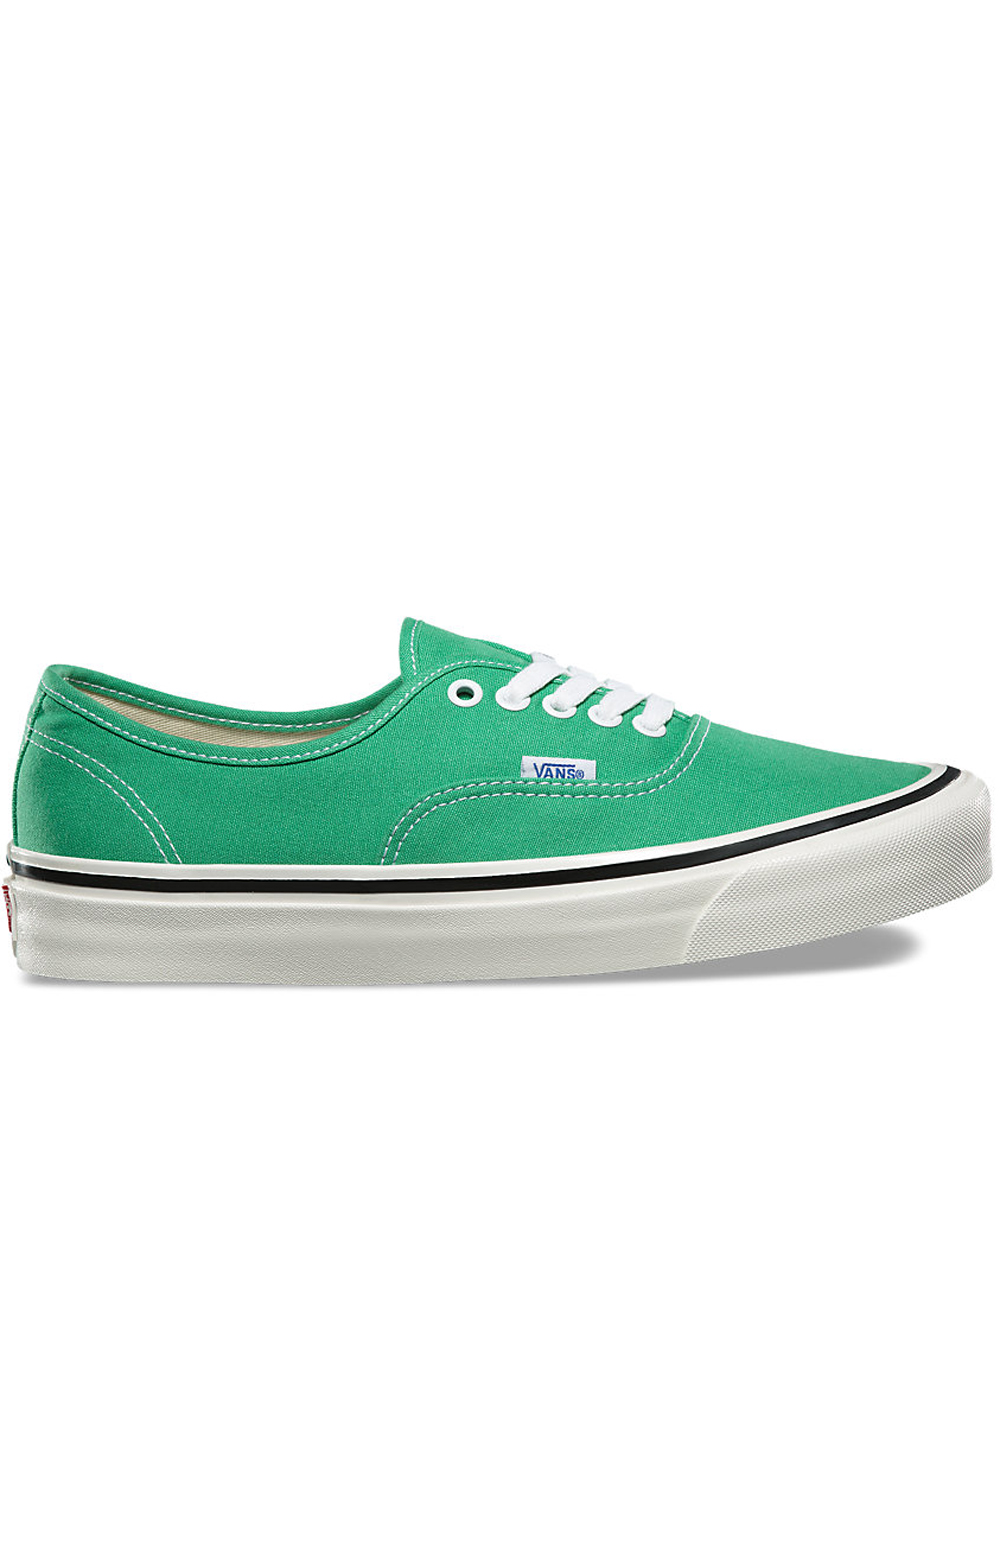 Anaheim Factory Authentic 44 DX Shoe - OG Jade